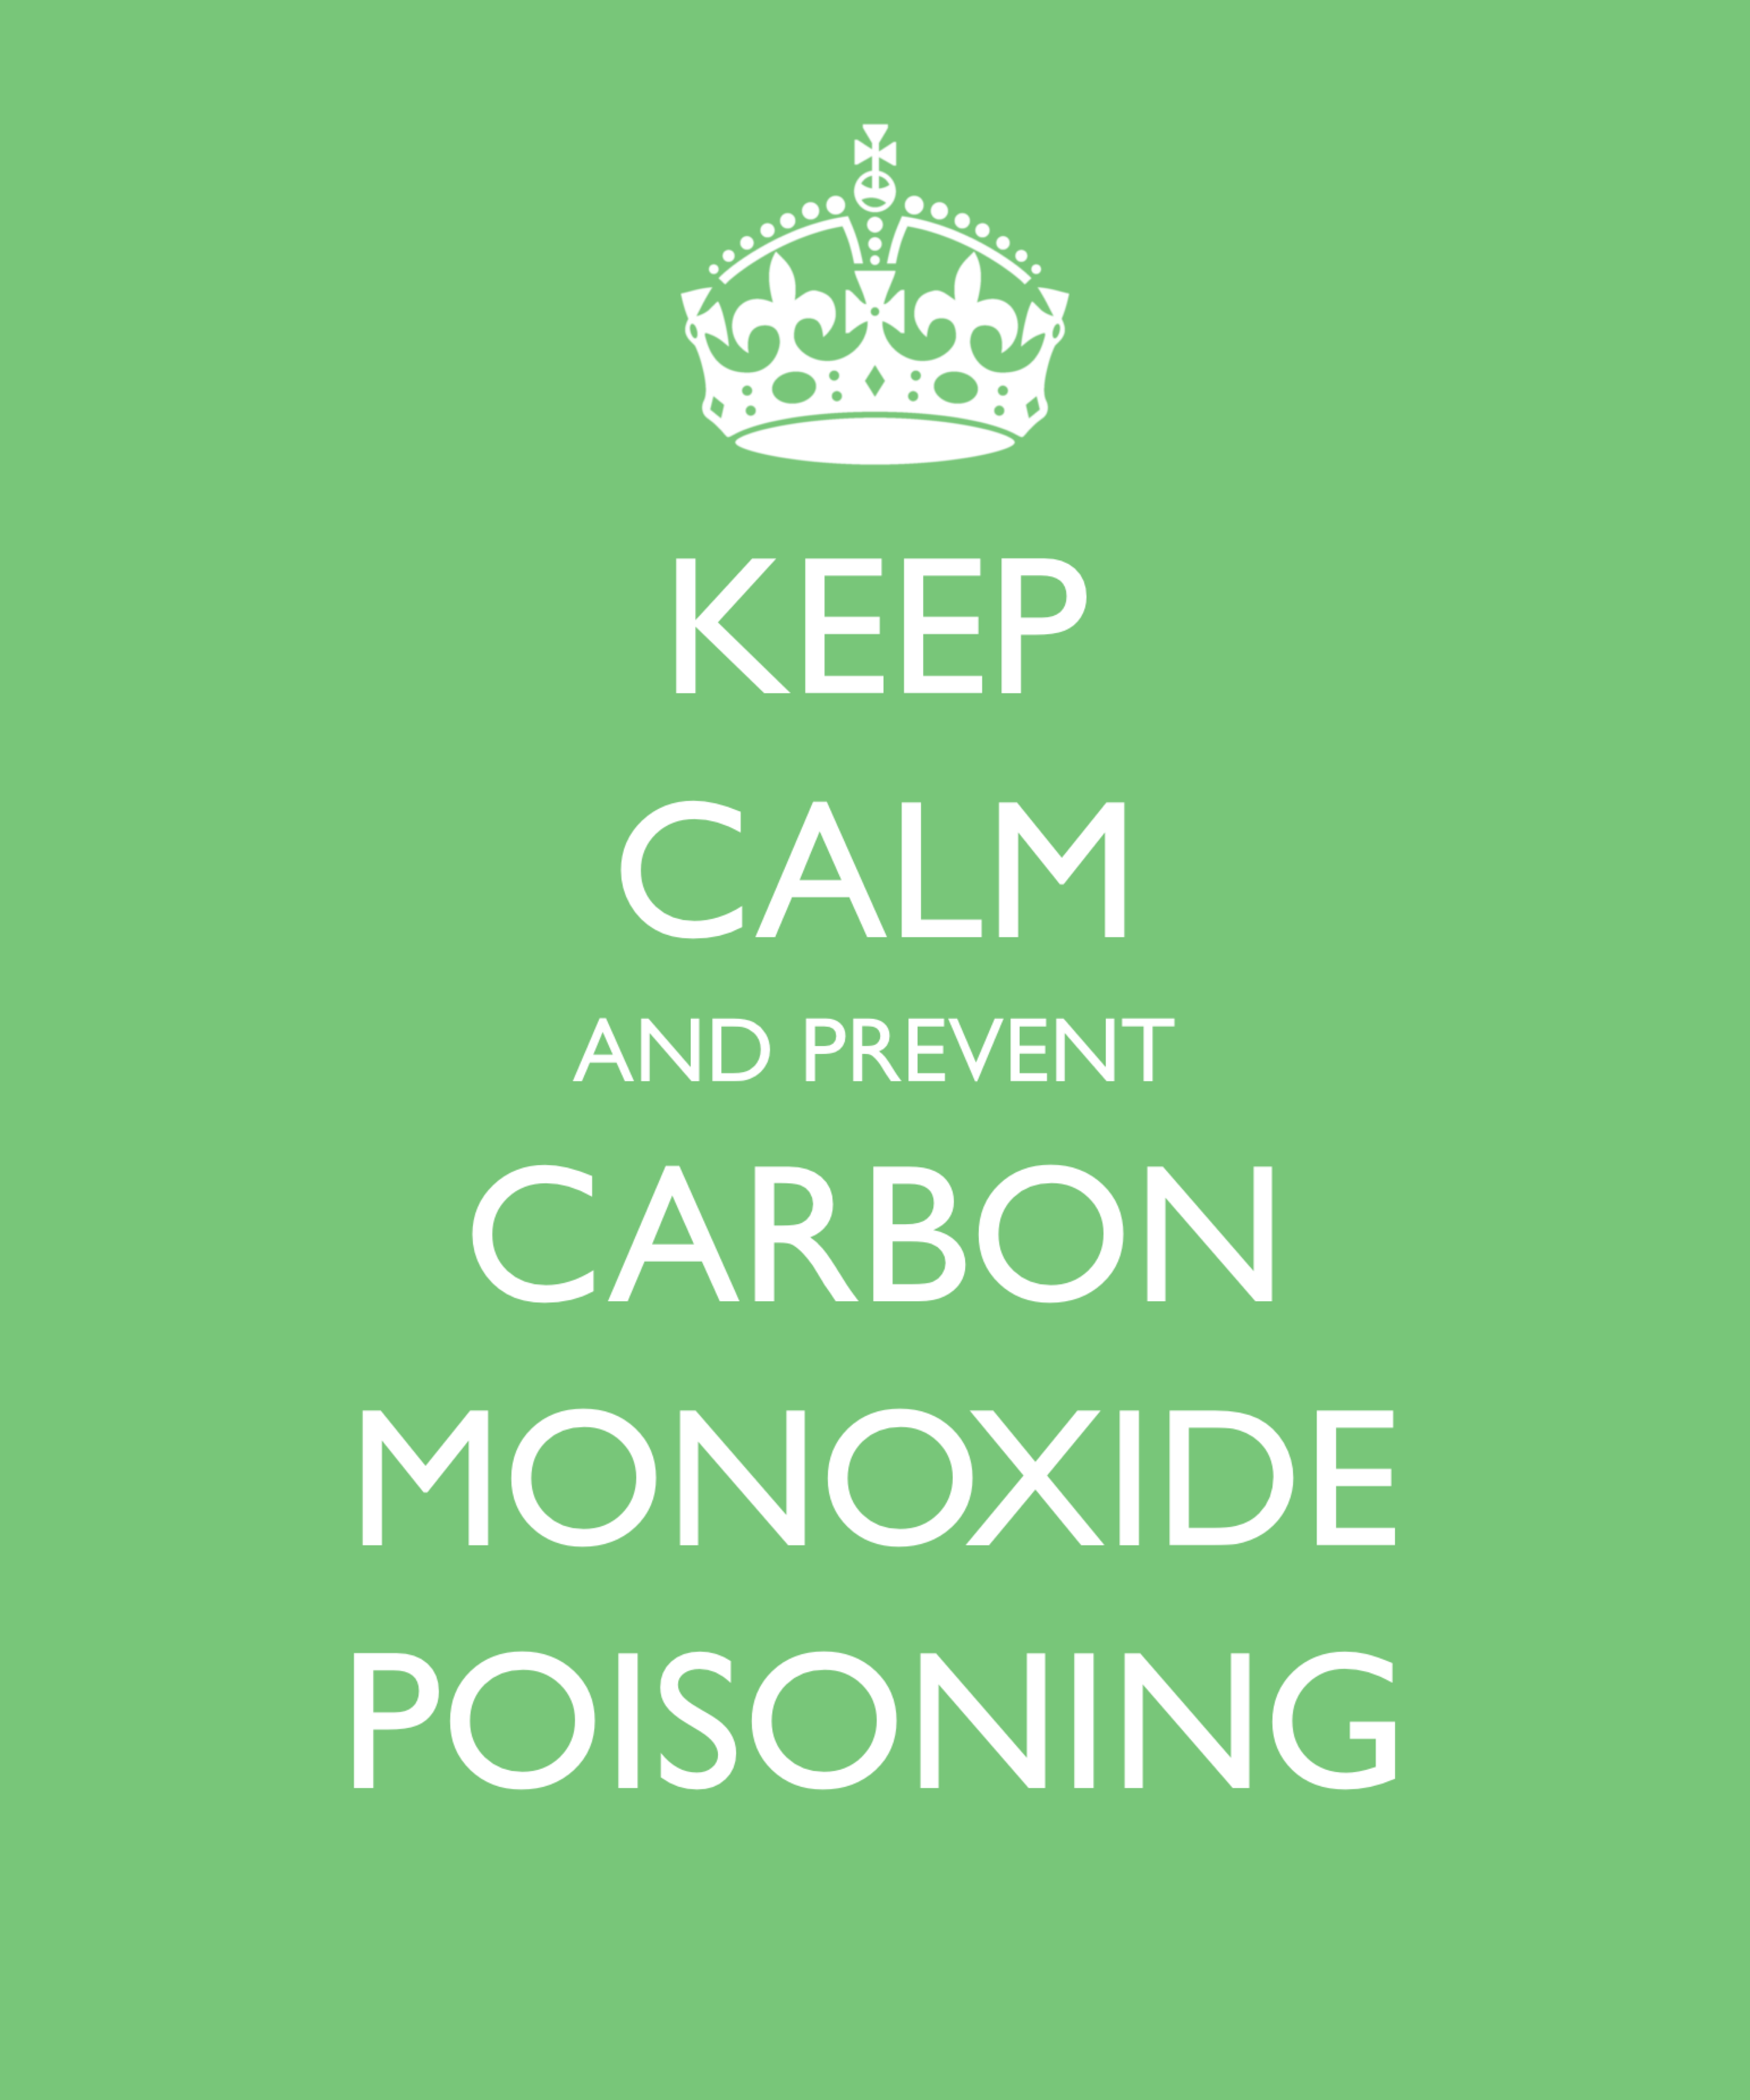 6 Signs of Carbon Monoxide Poisoning (Plus a Giveaway)